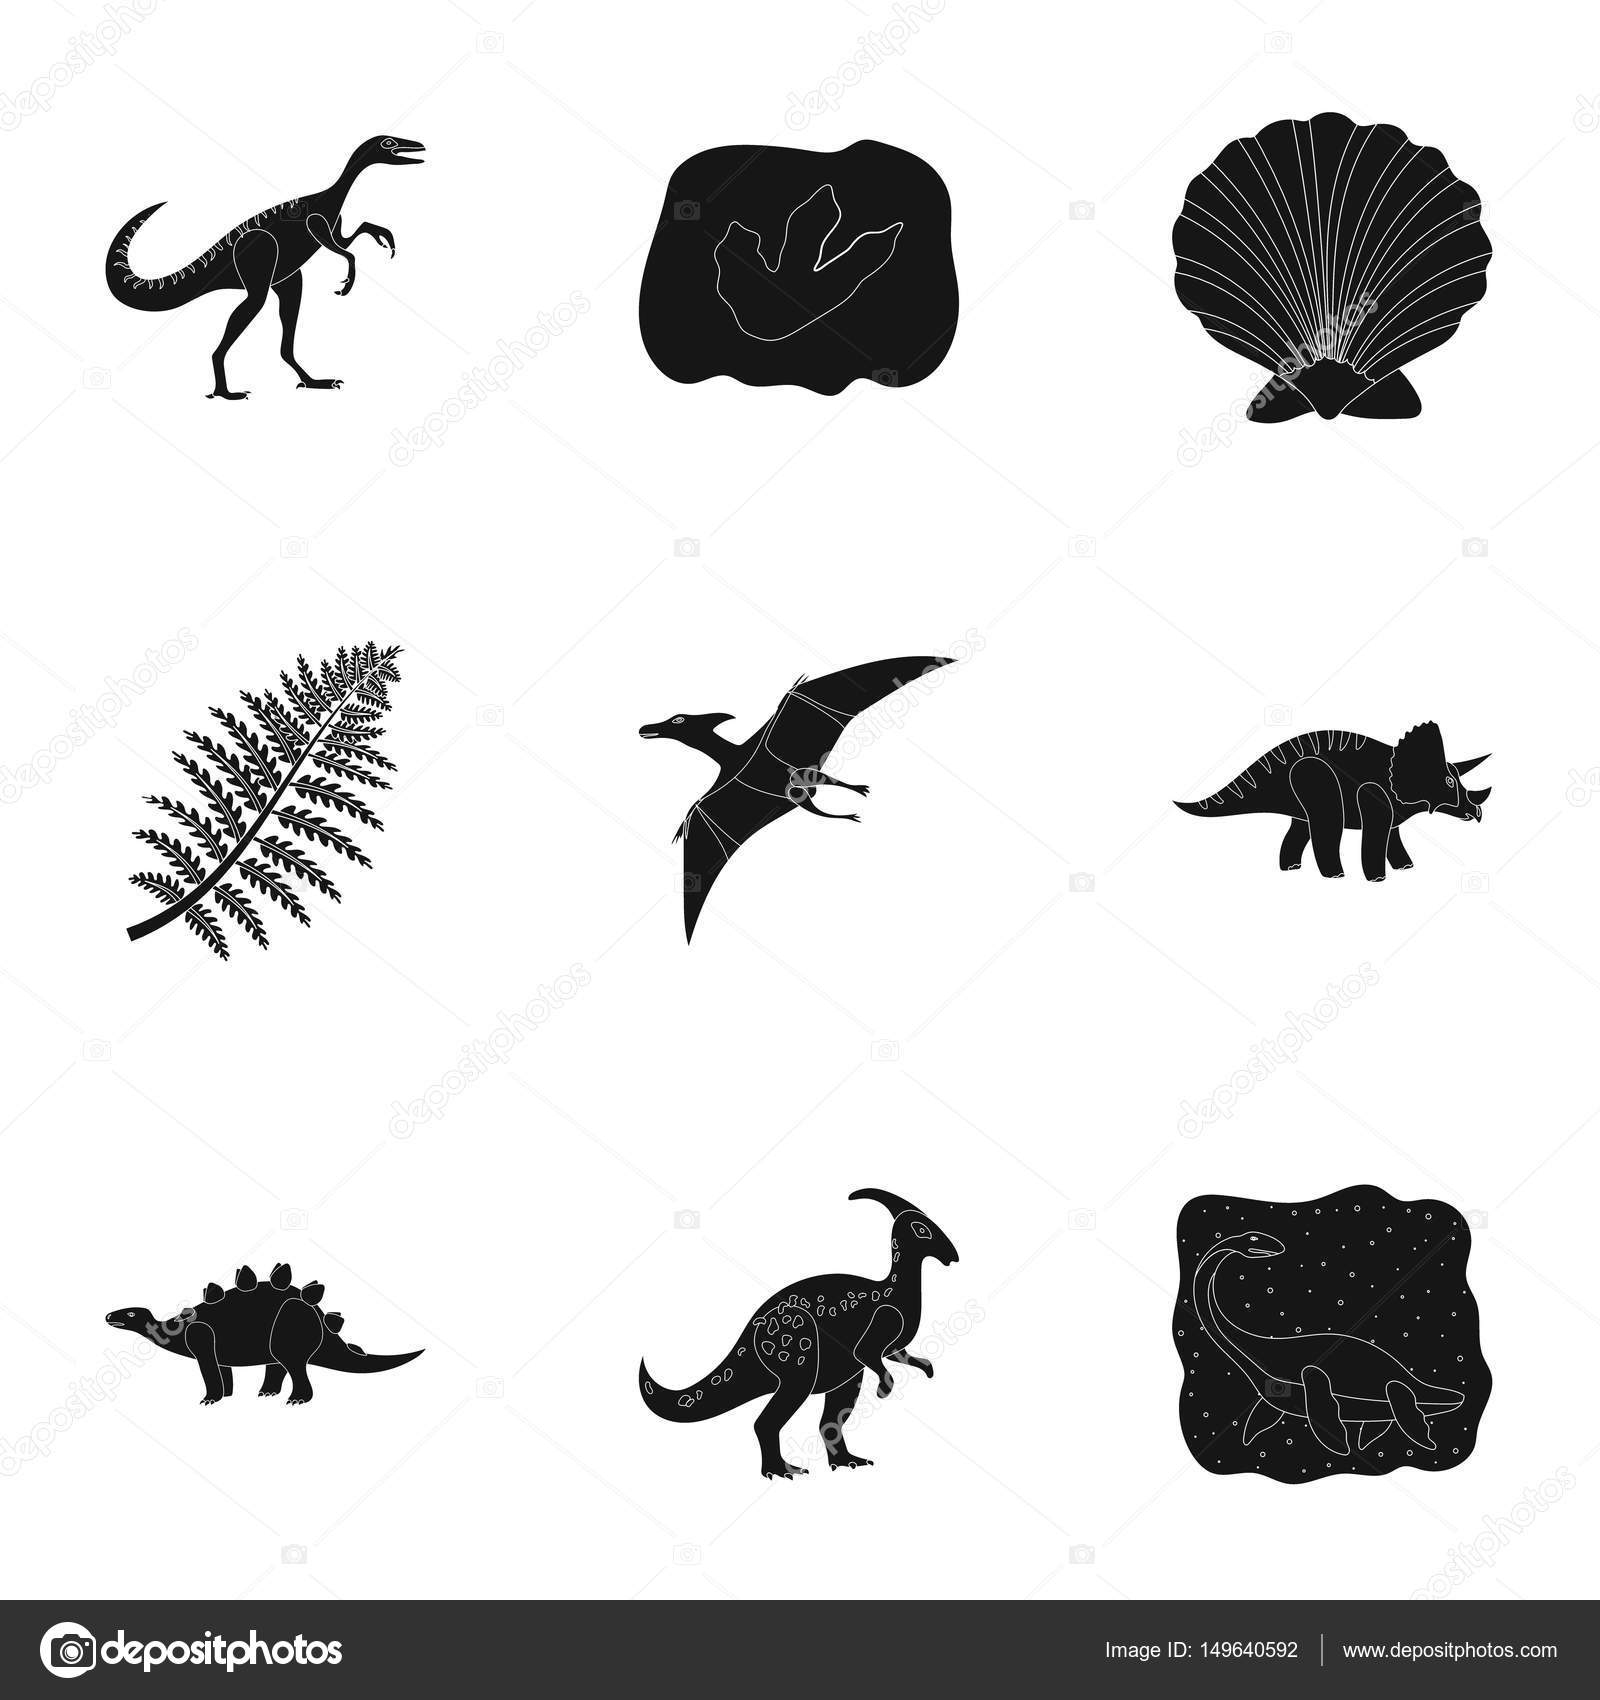 Mammals Ancient Extinct Animals And Their Tracks And Remains Dinosaurs Tyrannosaurs Pnictosaursdinisaurs And Prehistorical Icon In Set Collection On Black Style Depositphotos Ancient Extinct Animals And Their Tracks And Remains Dinosaurs